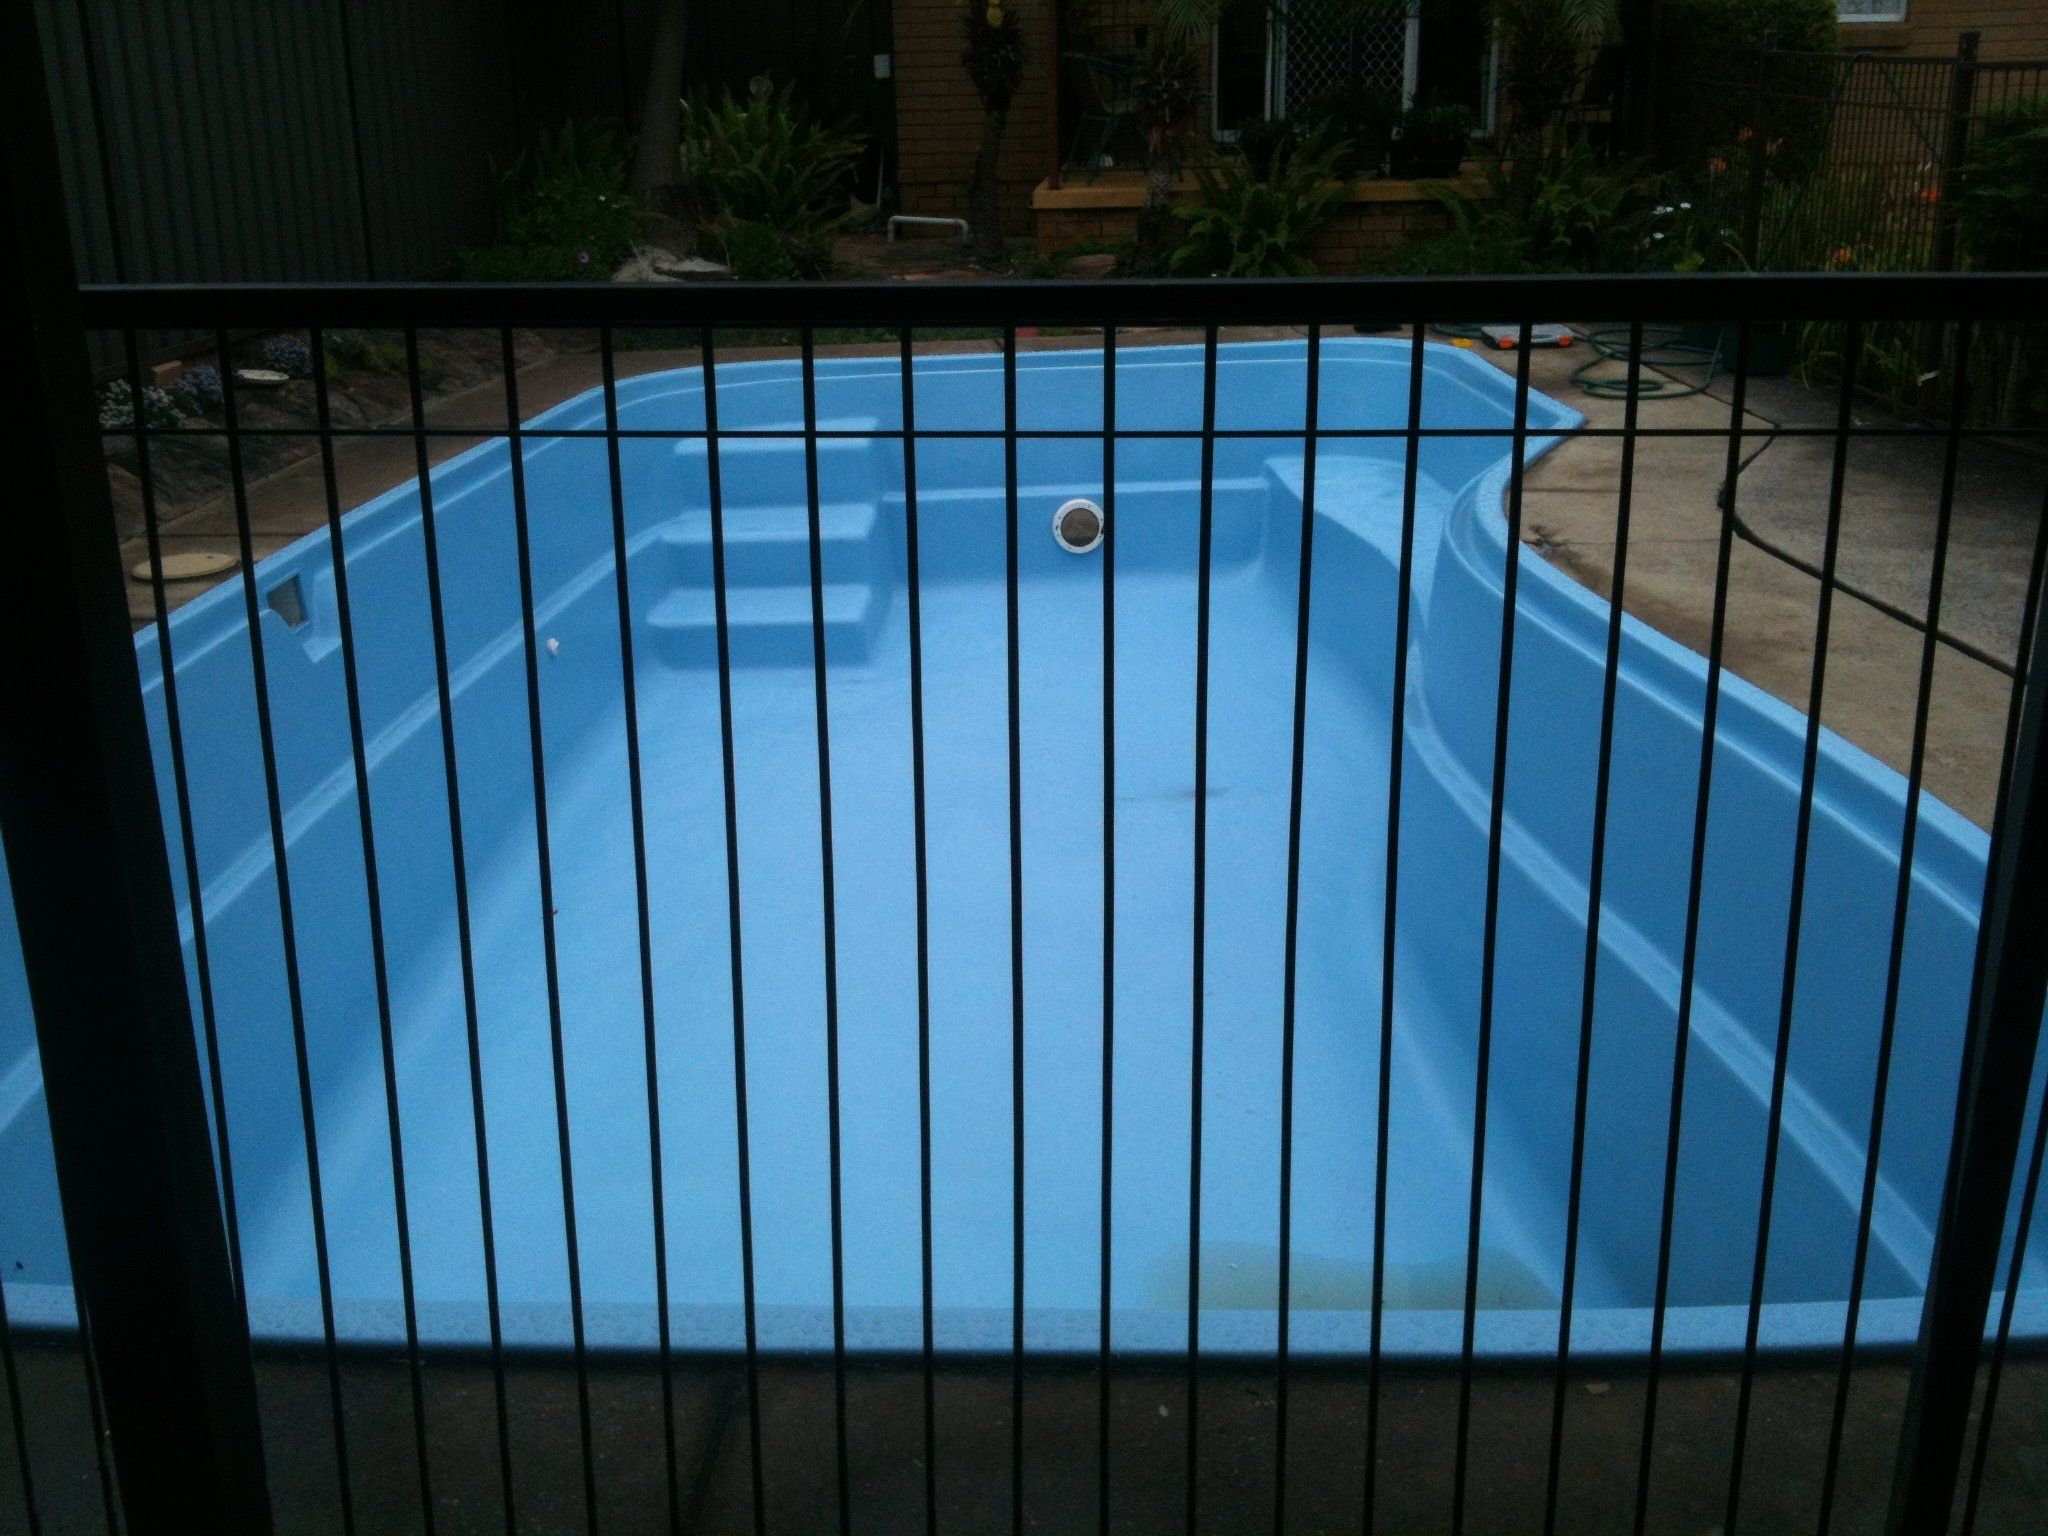 Pool resurfacing work completed by professional